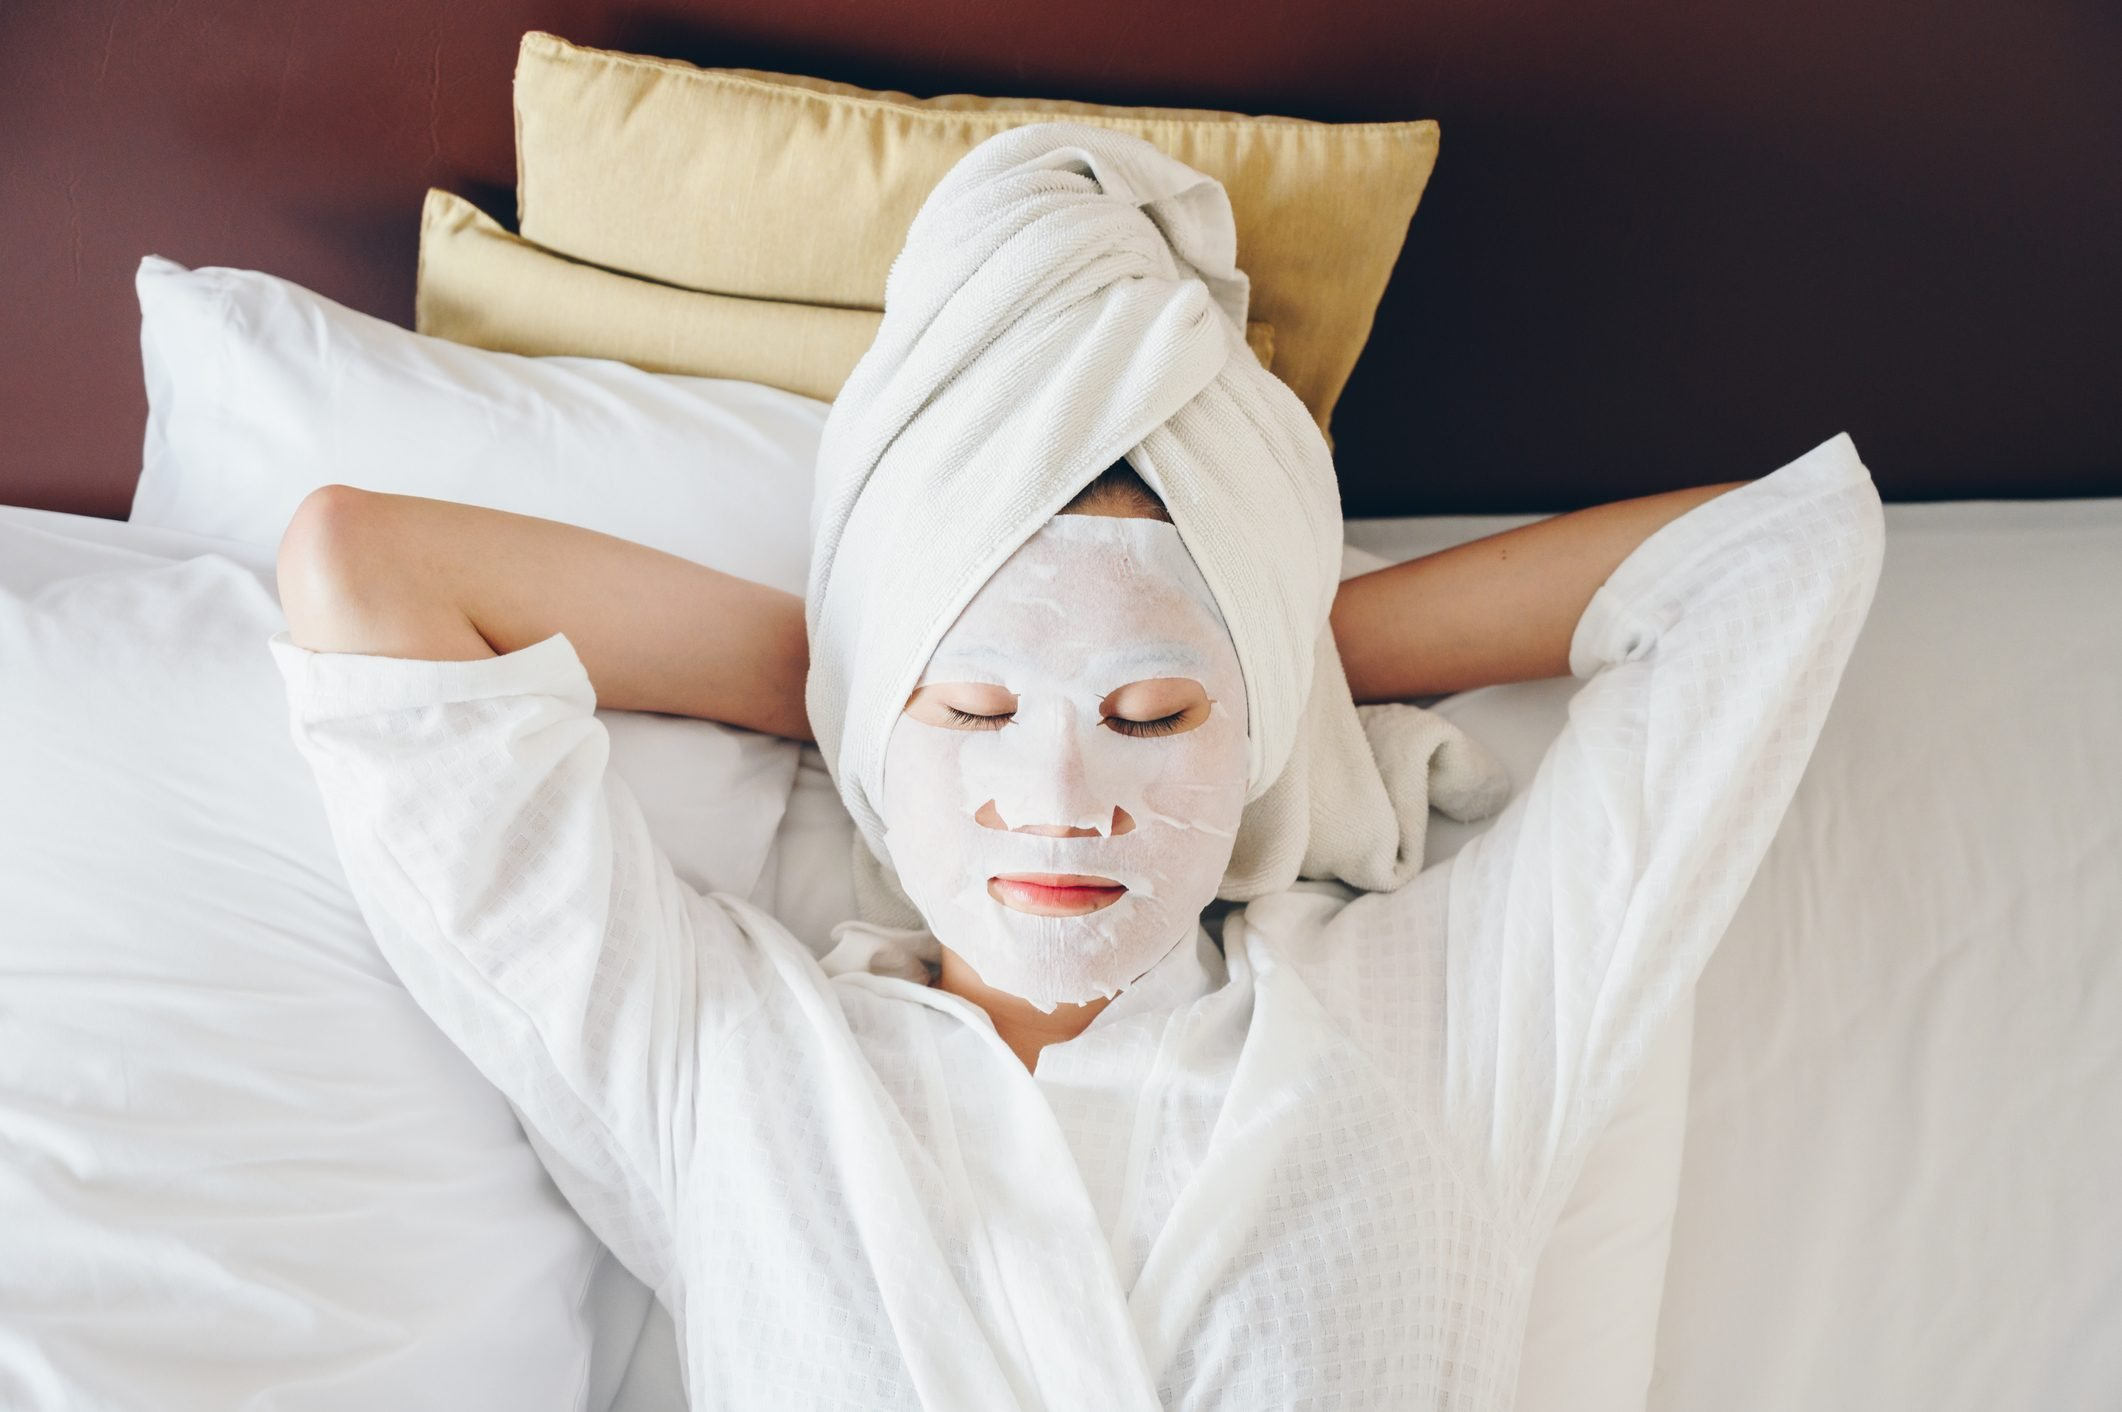 Portrait of young woman sleeping on bed with applying facial mask for enhance her skin.